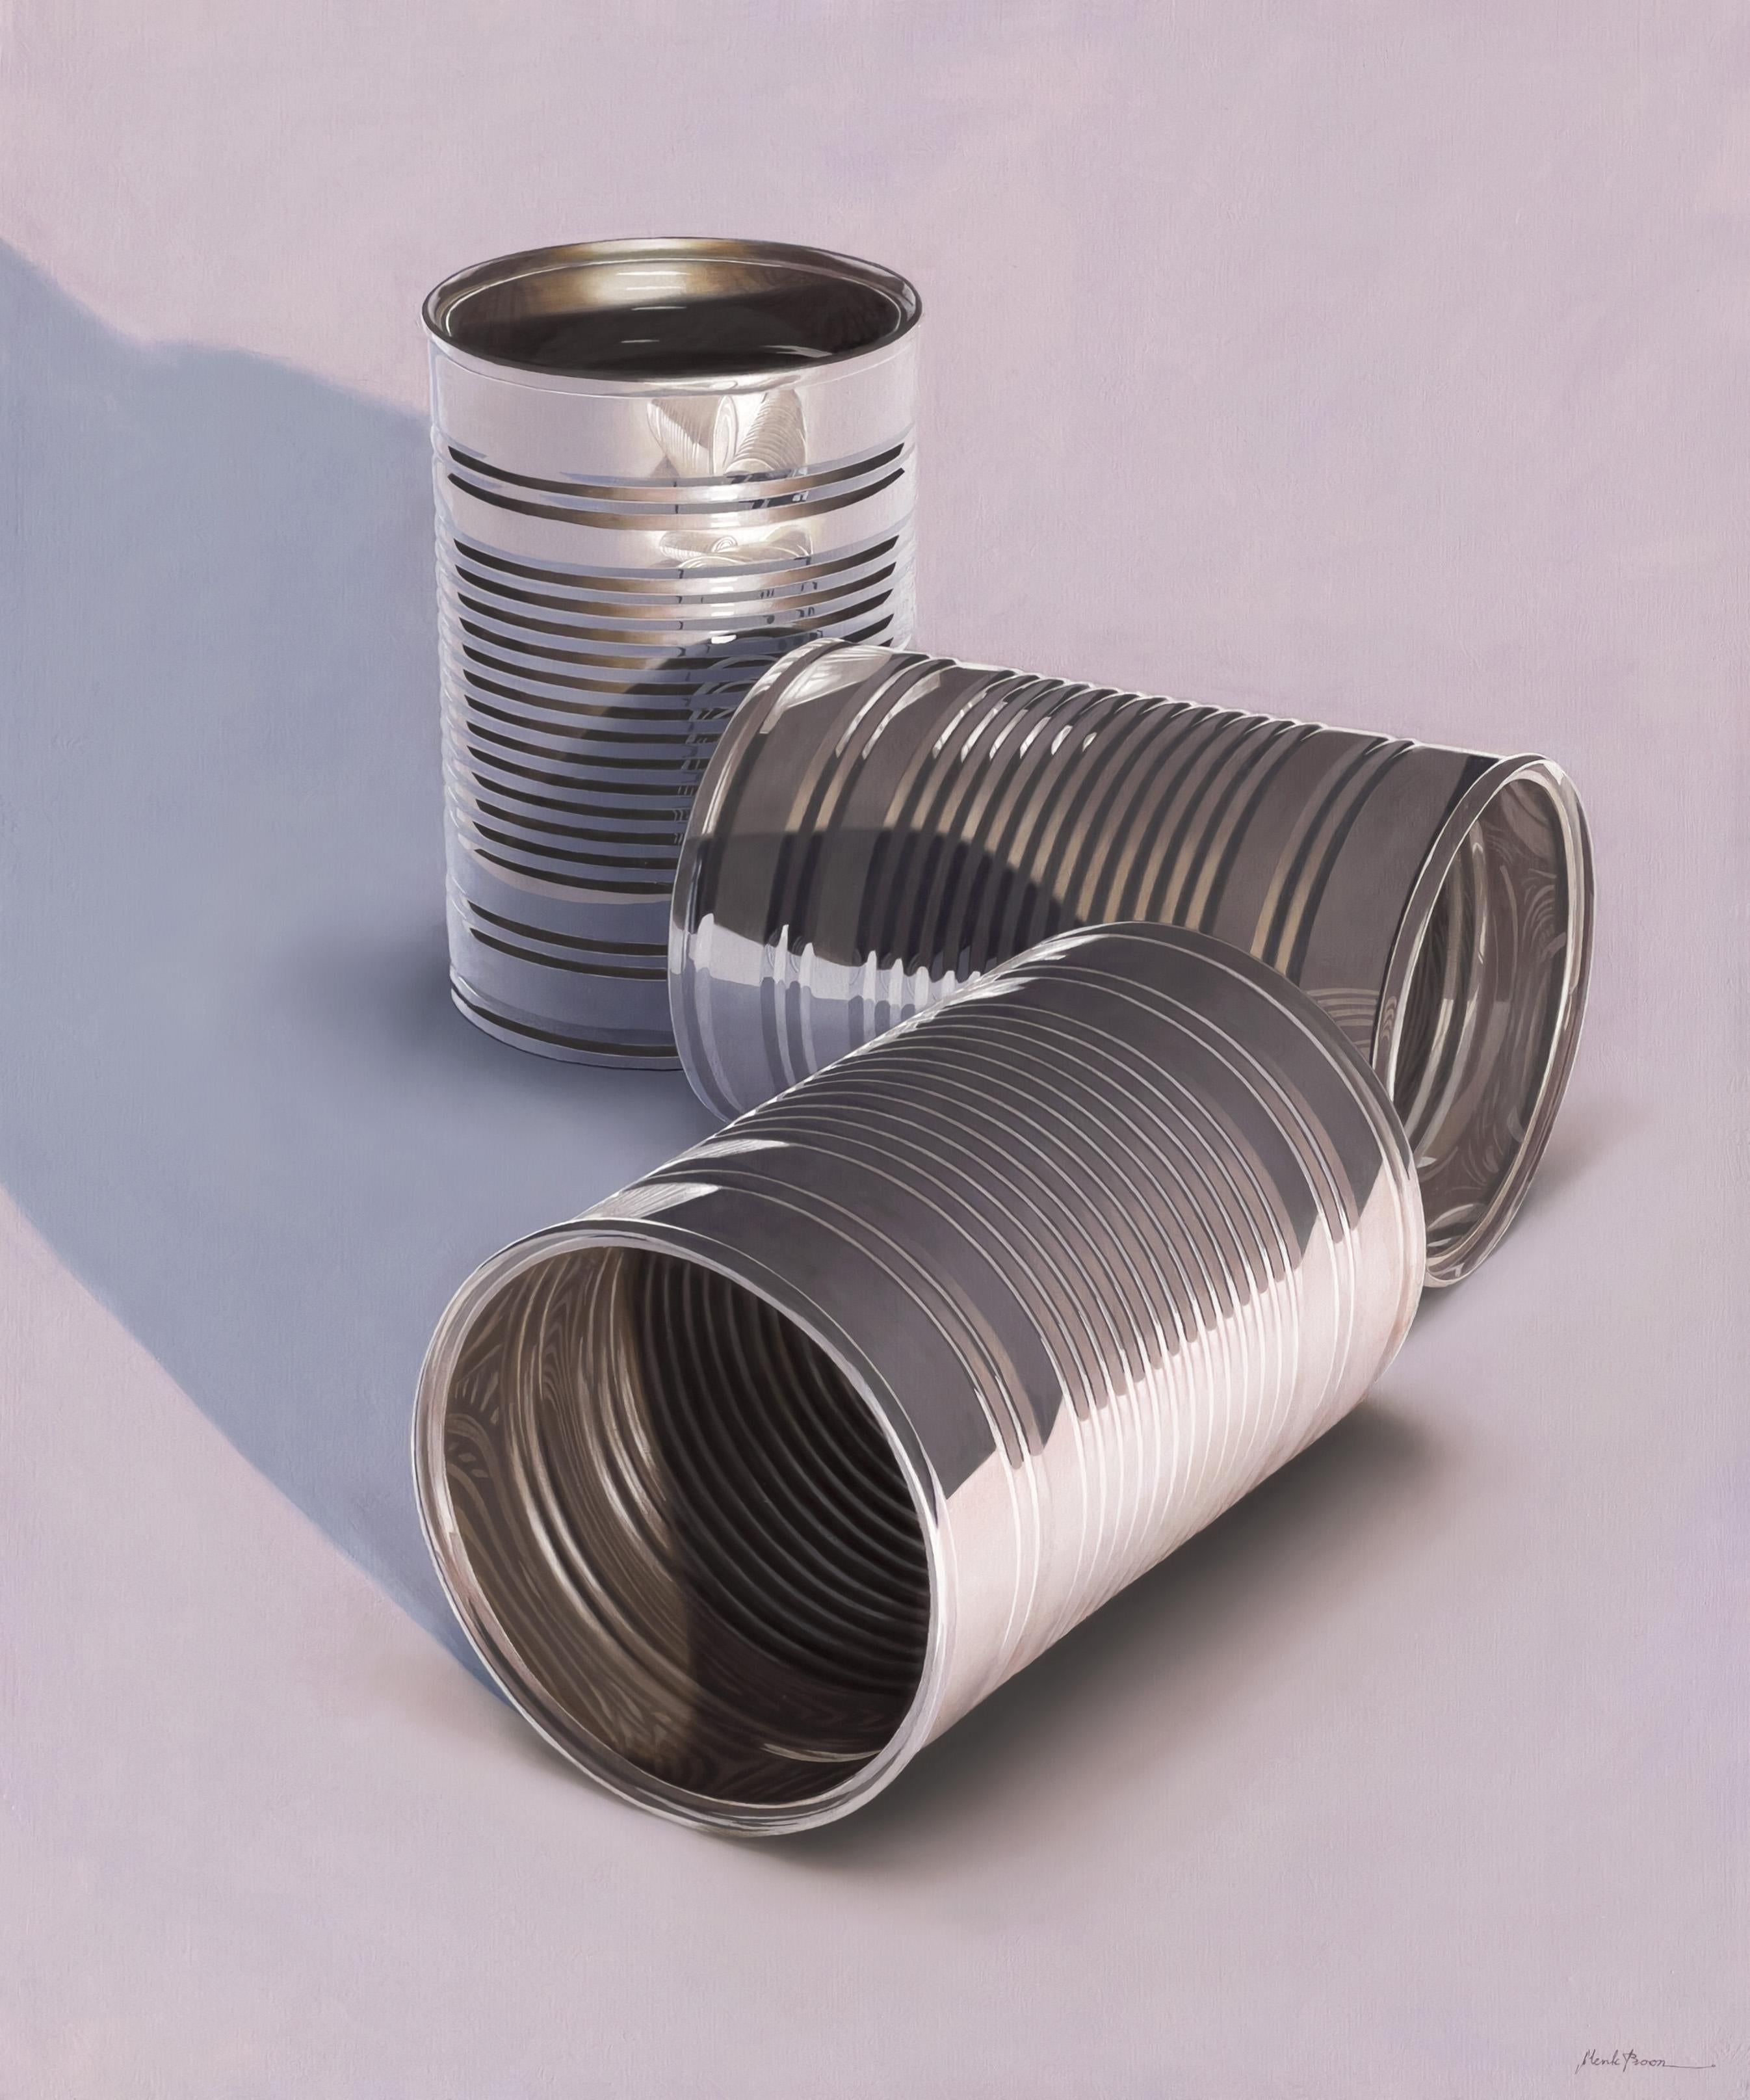 Composition with Three Cans- 21st Century Hyper Realistic Still-life Painting